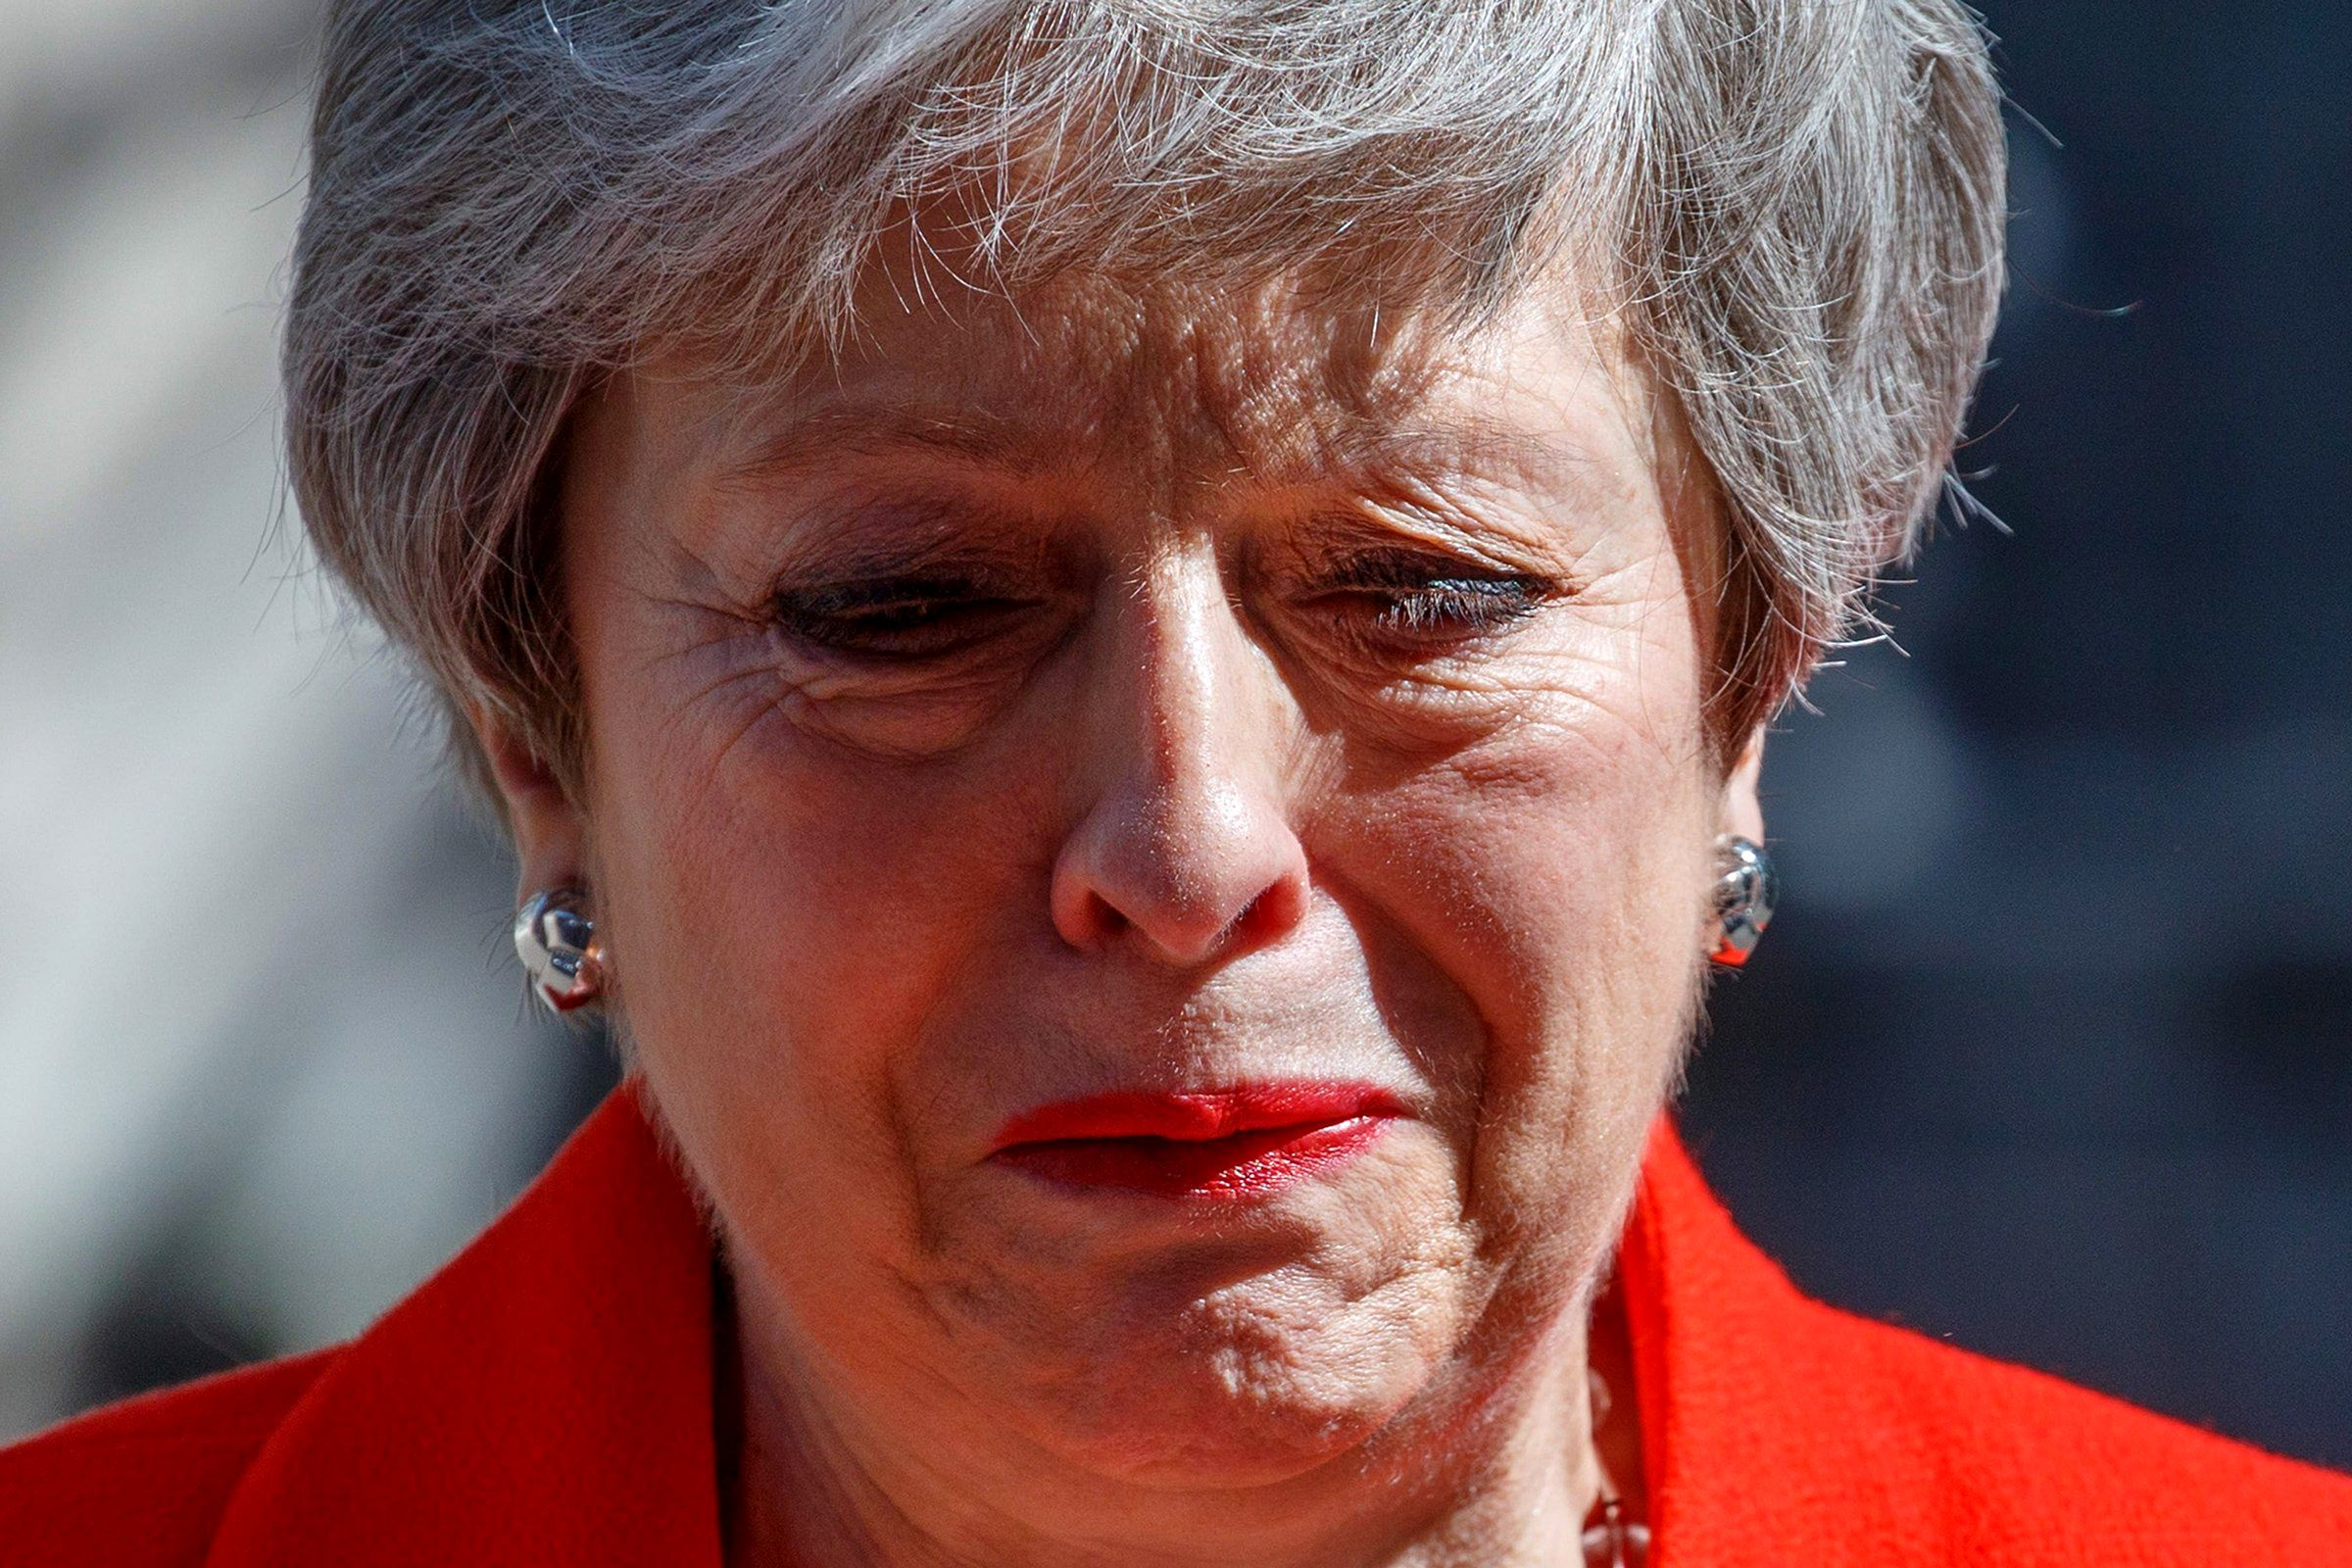 Britain's Prime Minister Theresa May, leader of the U.K.'s ruling Conservative Party, announces her resignation in London on May 24. Her resignation took effect in June.